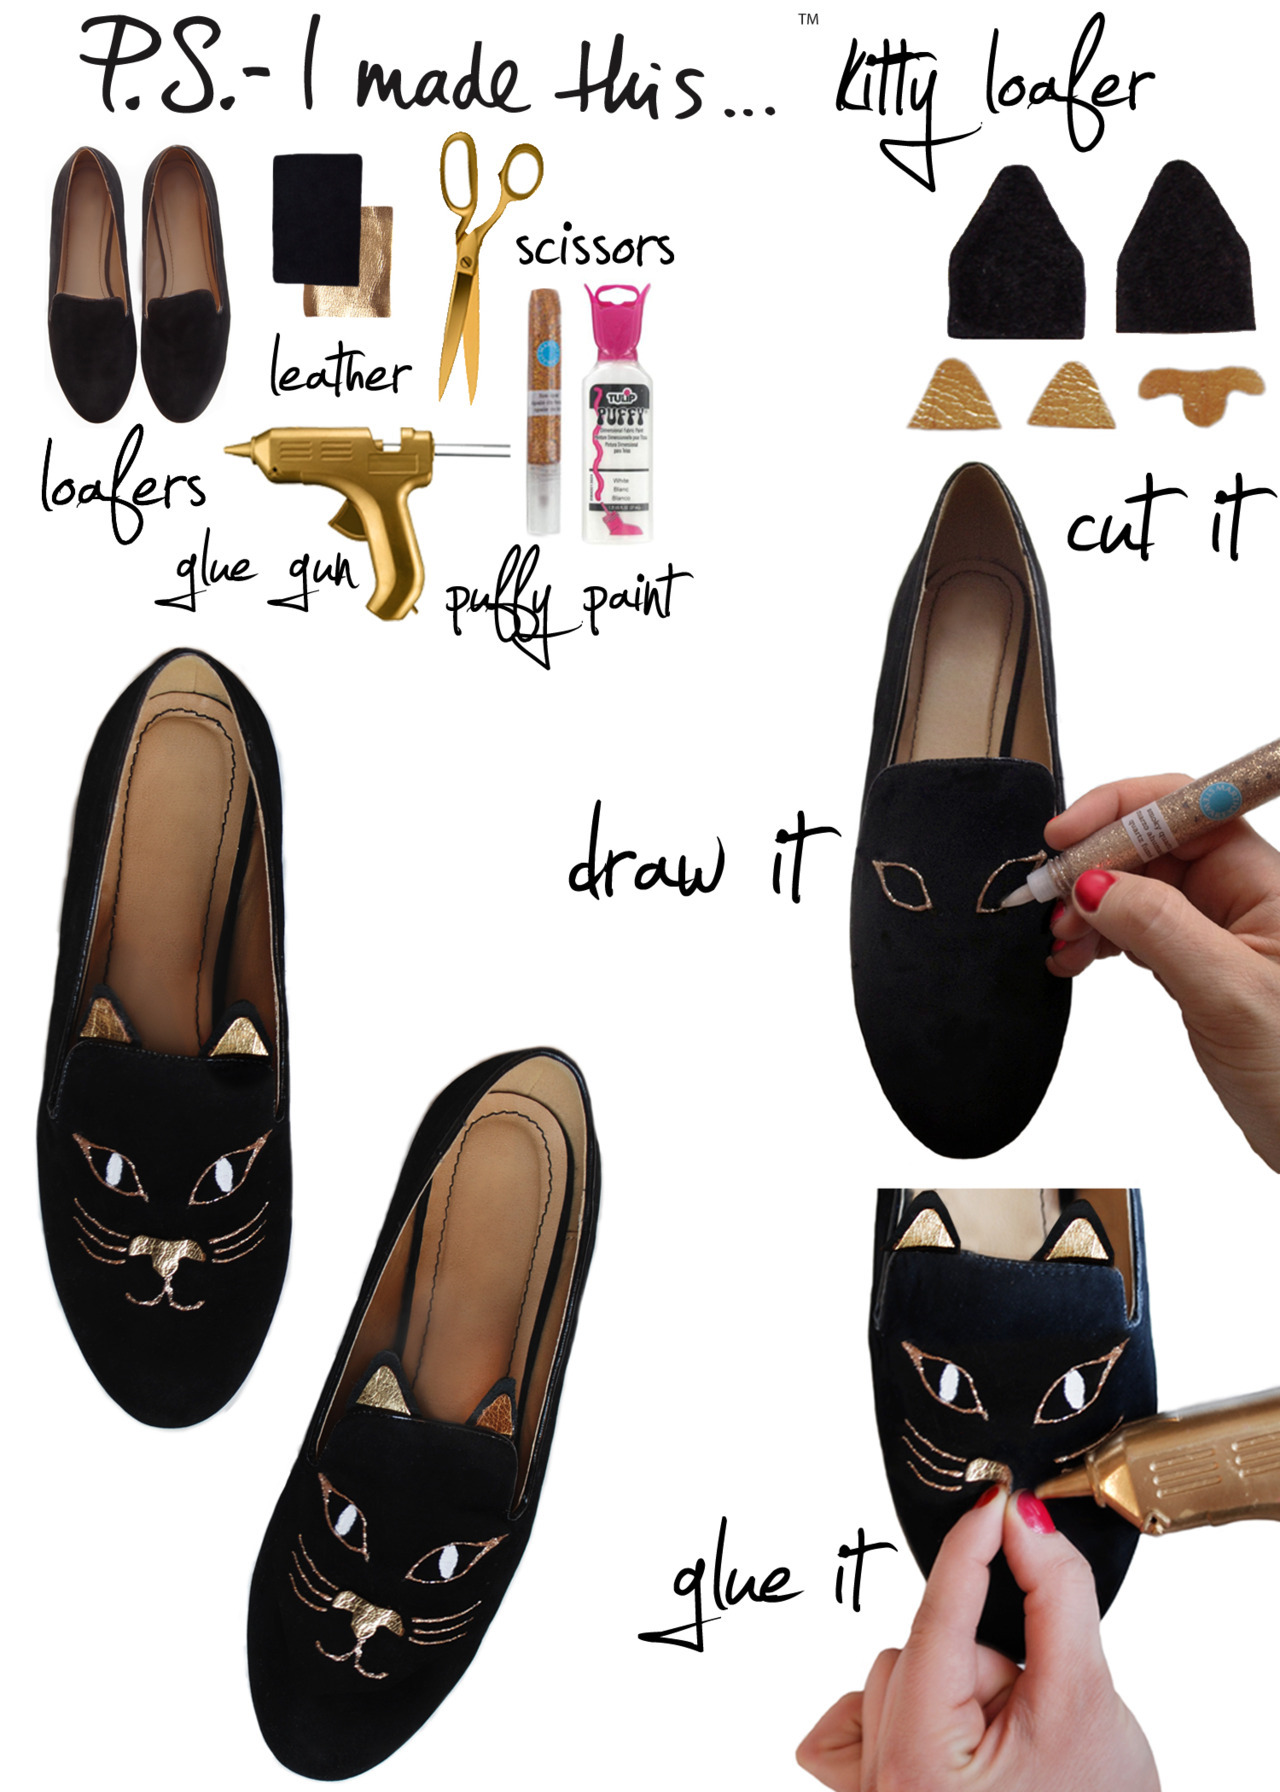 "Unleash your inner Cat Power.  From  Charlotte Olympia's cat heels and flats to Jason Wu's Target collab mascot, we decided to jump on the bandwagon and pay homage to our feline friends with a delicious DIY.  Be fierce and show your feminine feline side with a DIY that's purrrrrrrfect!   To create:  cut out 2 triangles in black, that are slightly rounded, for the ears. Measure and cut out a smaller and contrasting shape for the inner ear.  Use the same fabric to create a nose shape.  Use either leather, suede, or any faux fabric you have.  Create a ""face"" with puffy paint drawing eyes onto a plain loafer. Be sure to use a different color puffy paint for the inside of eyes.  Glue ears onto the inside of the loafer with a glue gun.  Attach the nose and finish drawing the face by adding whiskers and a mouth.  Wait until puffy paint is completely dry before kicking up your heels and exercising your cat like reflects!"